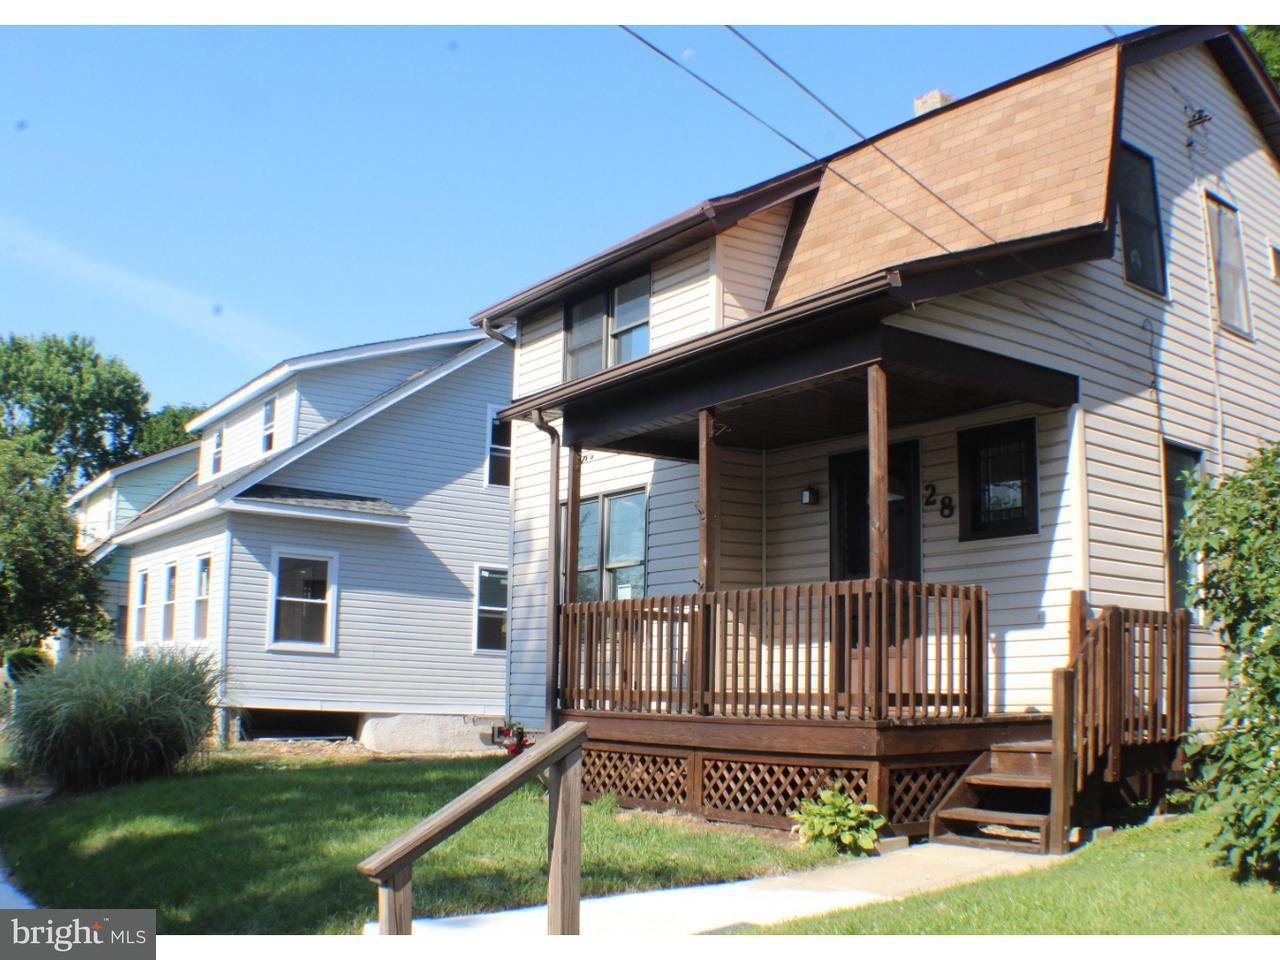 Single Family Home for Sale at 28 W CHELTON Road Parkside, Pennsylvania 19015 United States